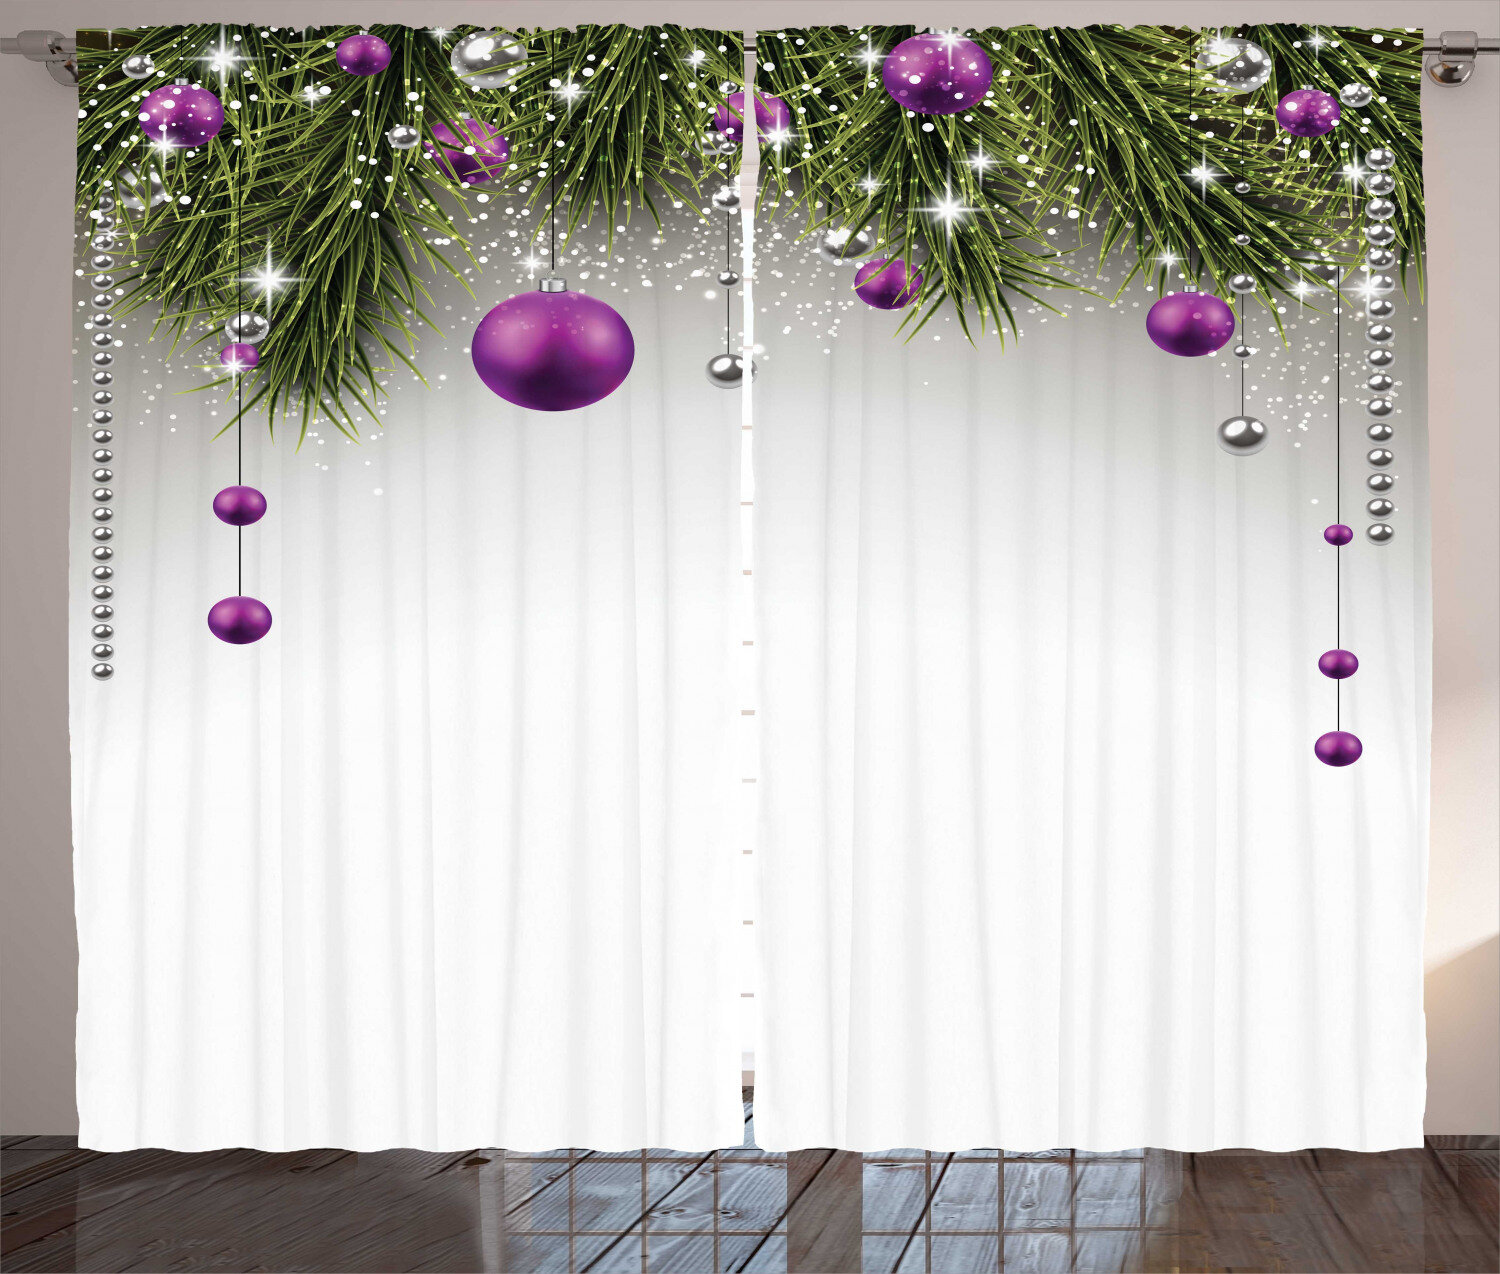 The Holiday Aisle Christmas Decorations Tree Decorations Tinsel And Ball With Gift Wrap Ribbon Picture Graphic Print Text Semi Sheer Rod Pocket Curtain Panels Reviews Wayfair